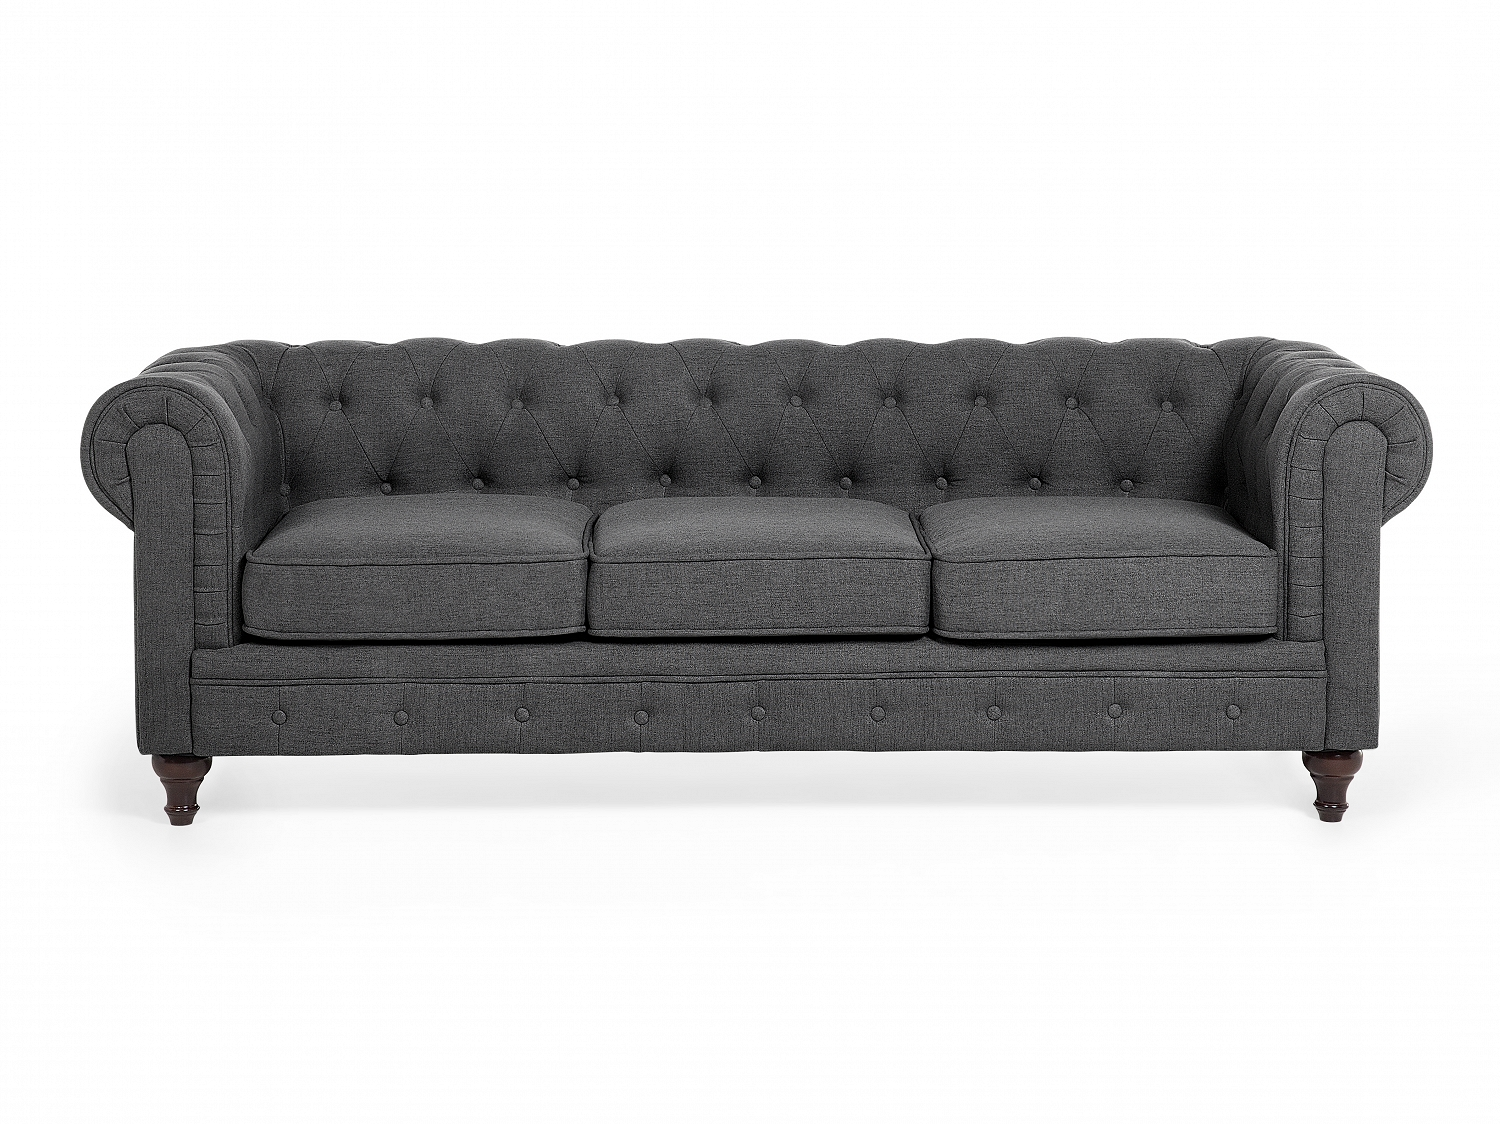 chesterfield sofa 3 sitzer sofa quilted grey fabric ebay. Black Bedroom Furniture Sets. Home Design Ideas